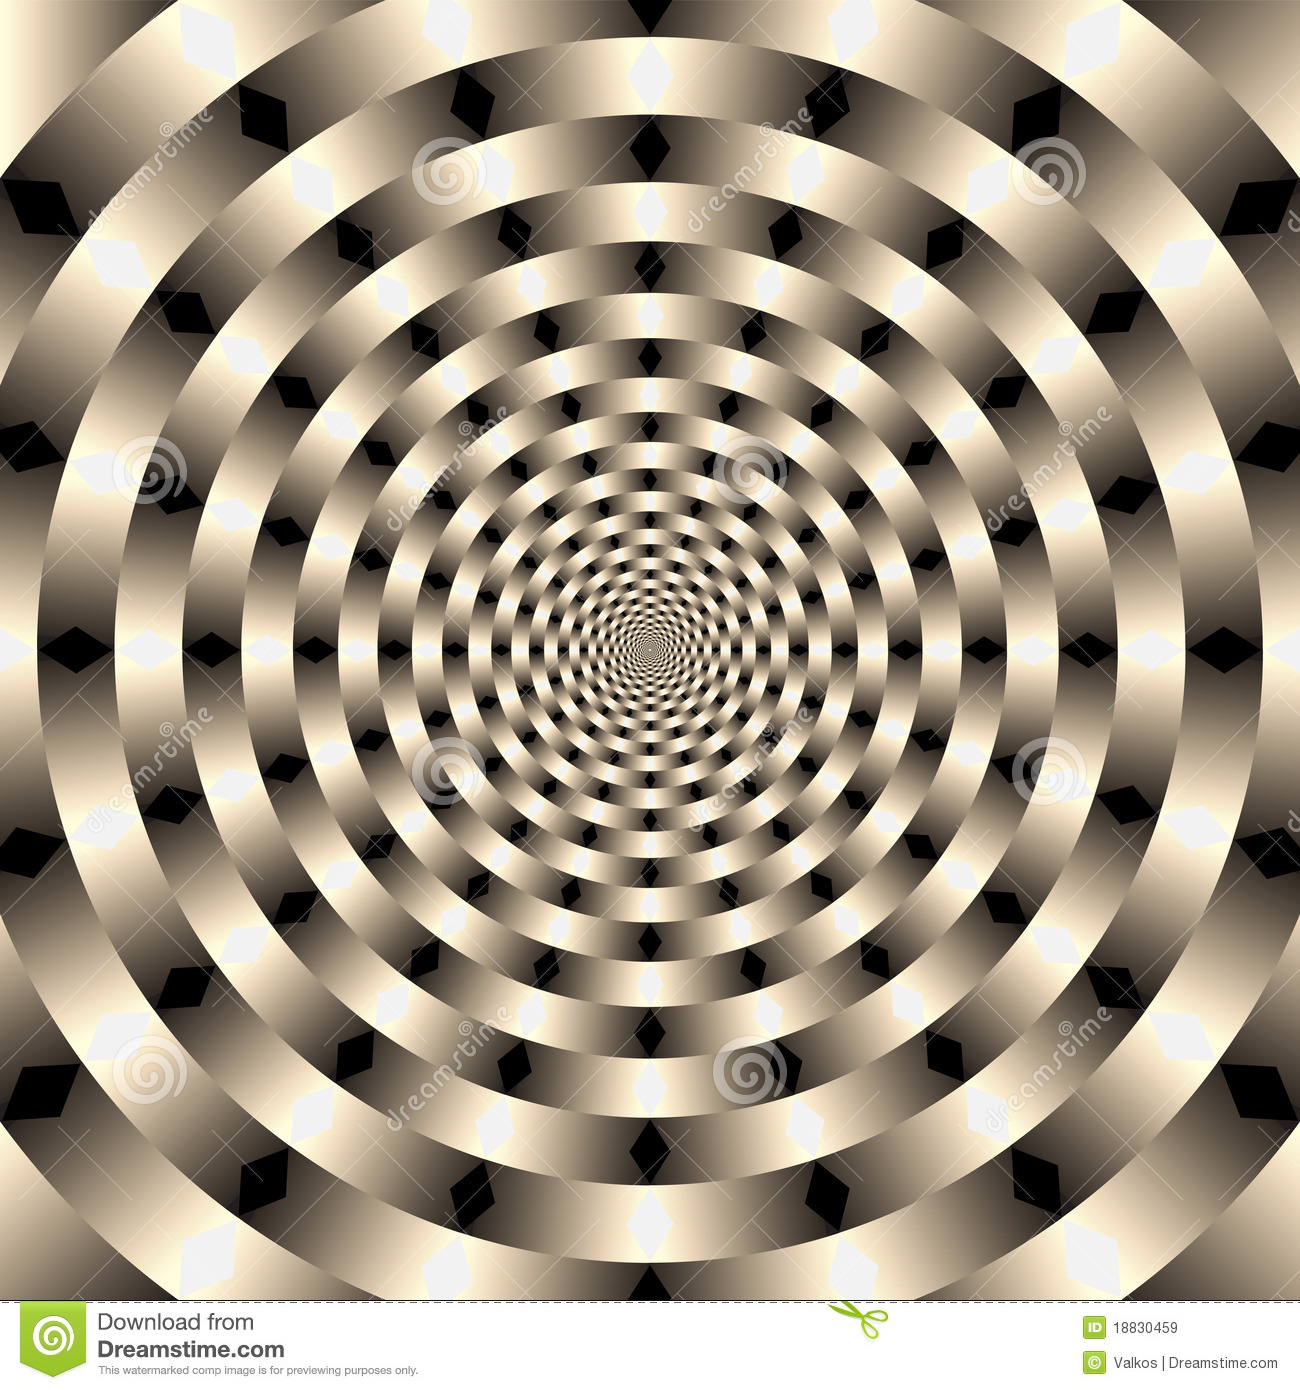 Geometric illusions background royalty free stock images for Geometric illusion art